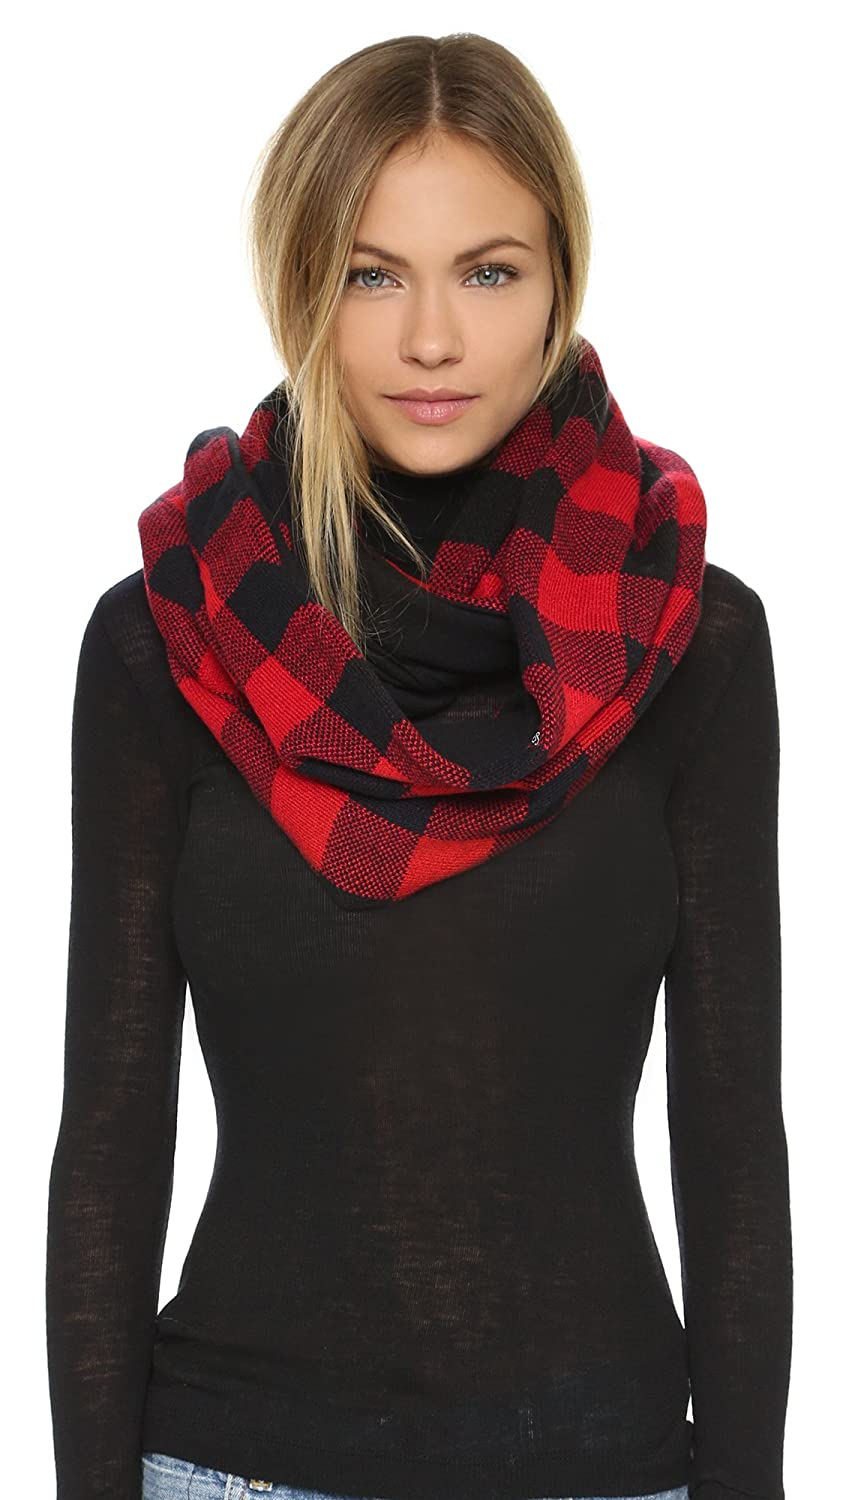 Fleece Lined Plaid Infinity Scarf in Black & White Plush Apparel yPr0foO